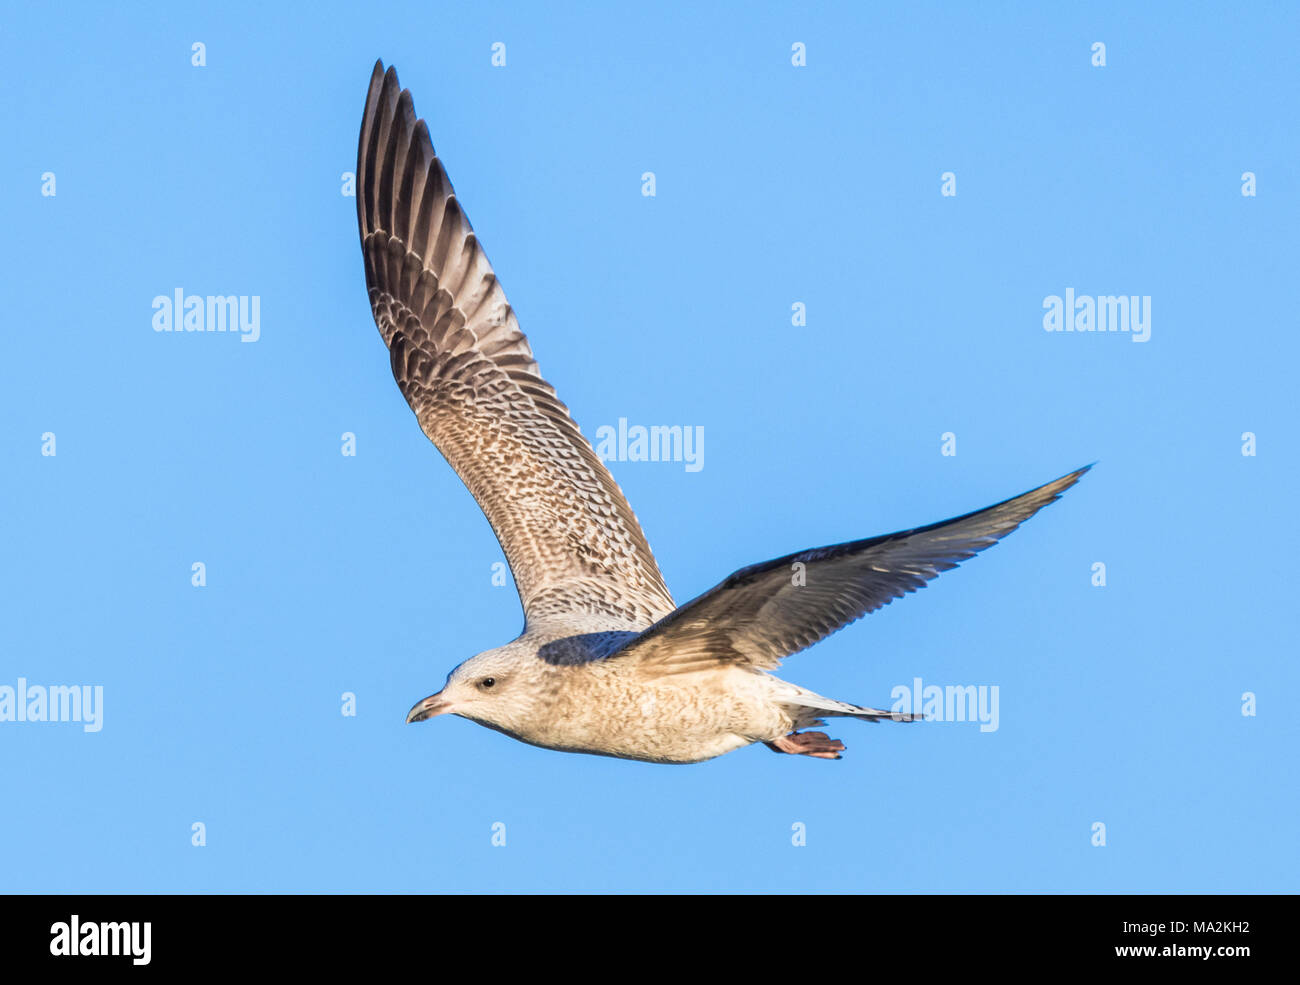 Juvenile Herring Gull (Larus argentatus) in flight against blue sky in Winter in Southern England, UK. - Stock Image